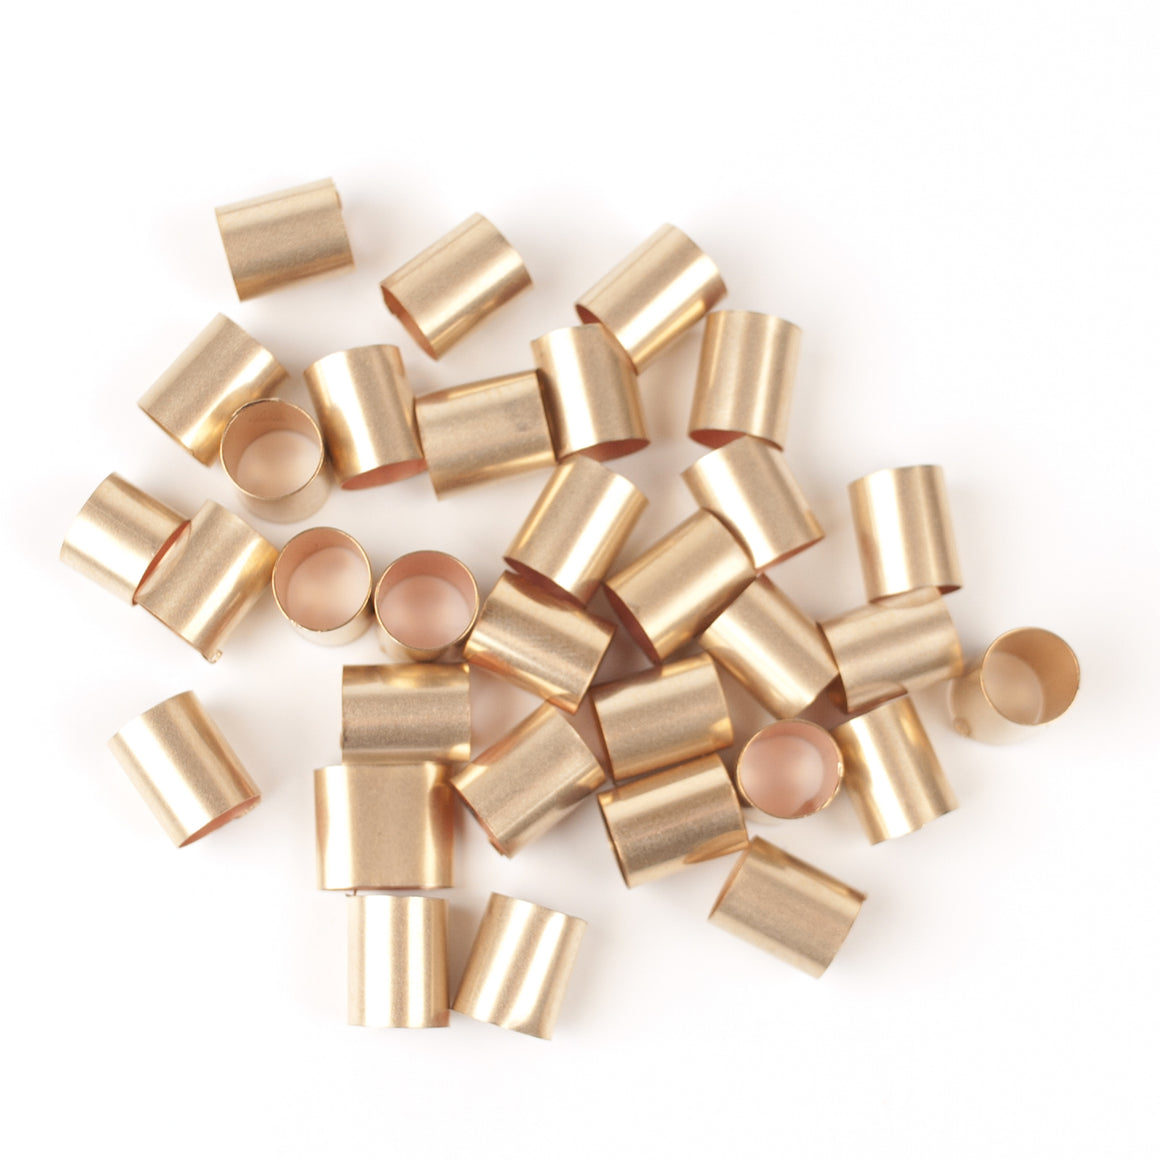 Gold filled tube bead - Yooladesign